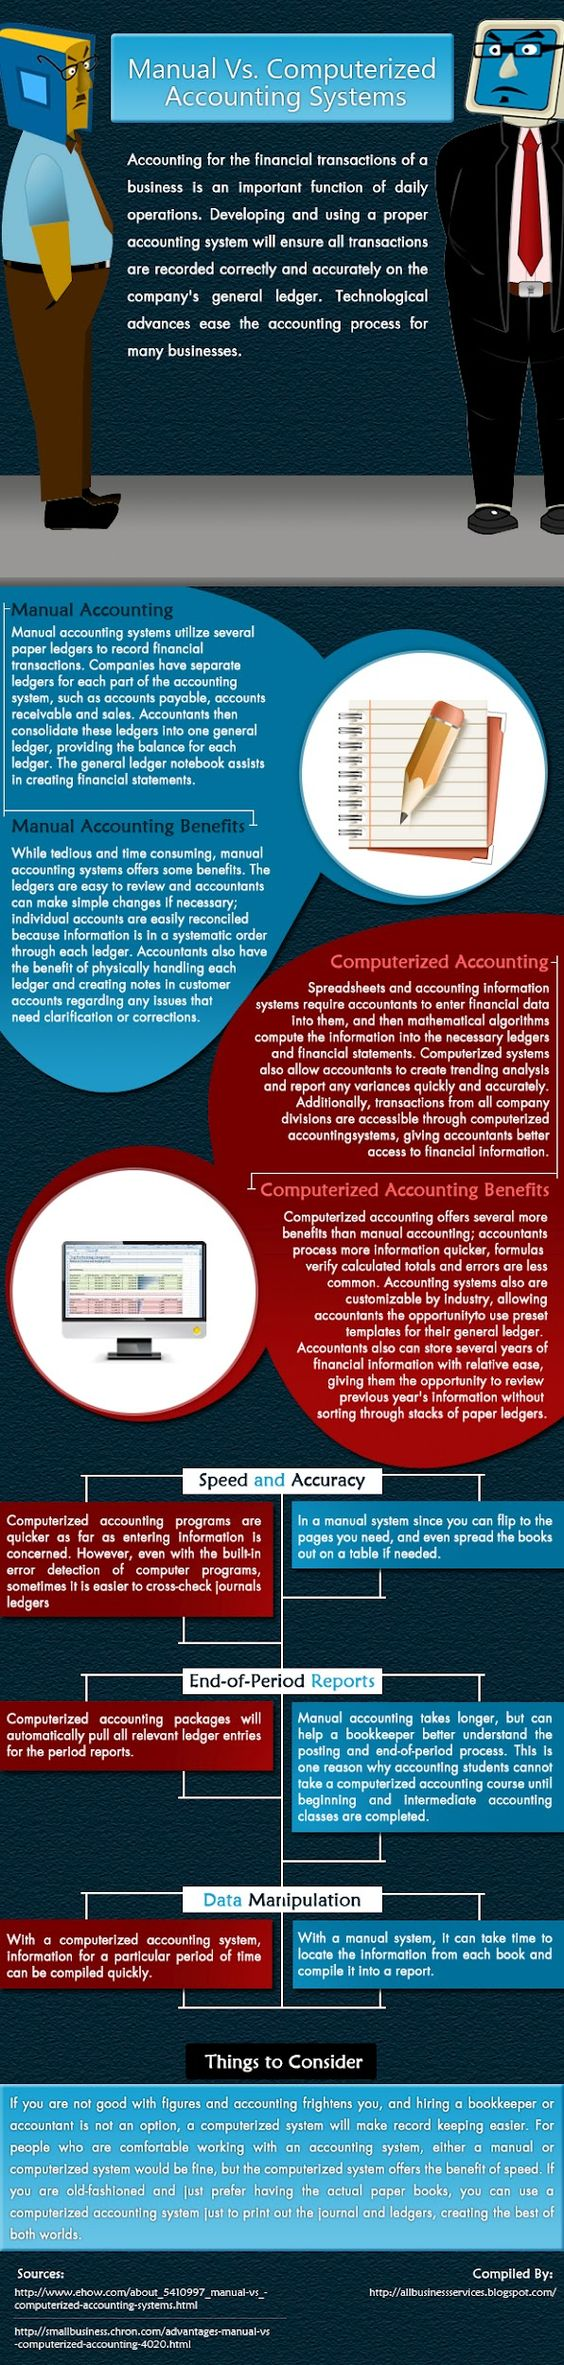 an analysis of the importance of computerised accounting information system Advantages of computerized accounting business owners need to look for every advantage when it comes to running a business most business owners are not accountants or bookkeepers by trade and find it challenging to do most accounting.